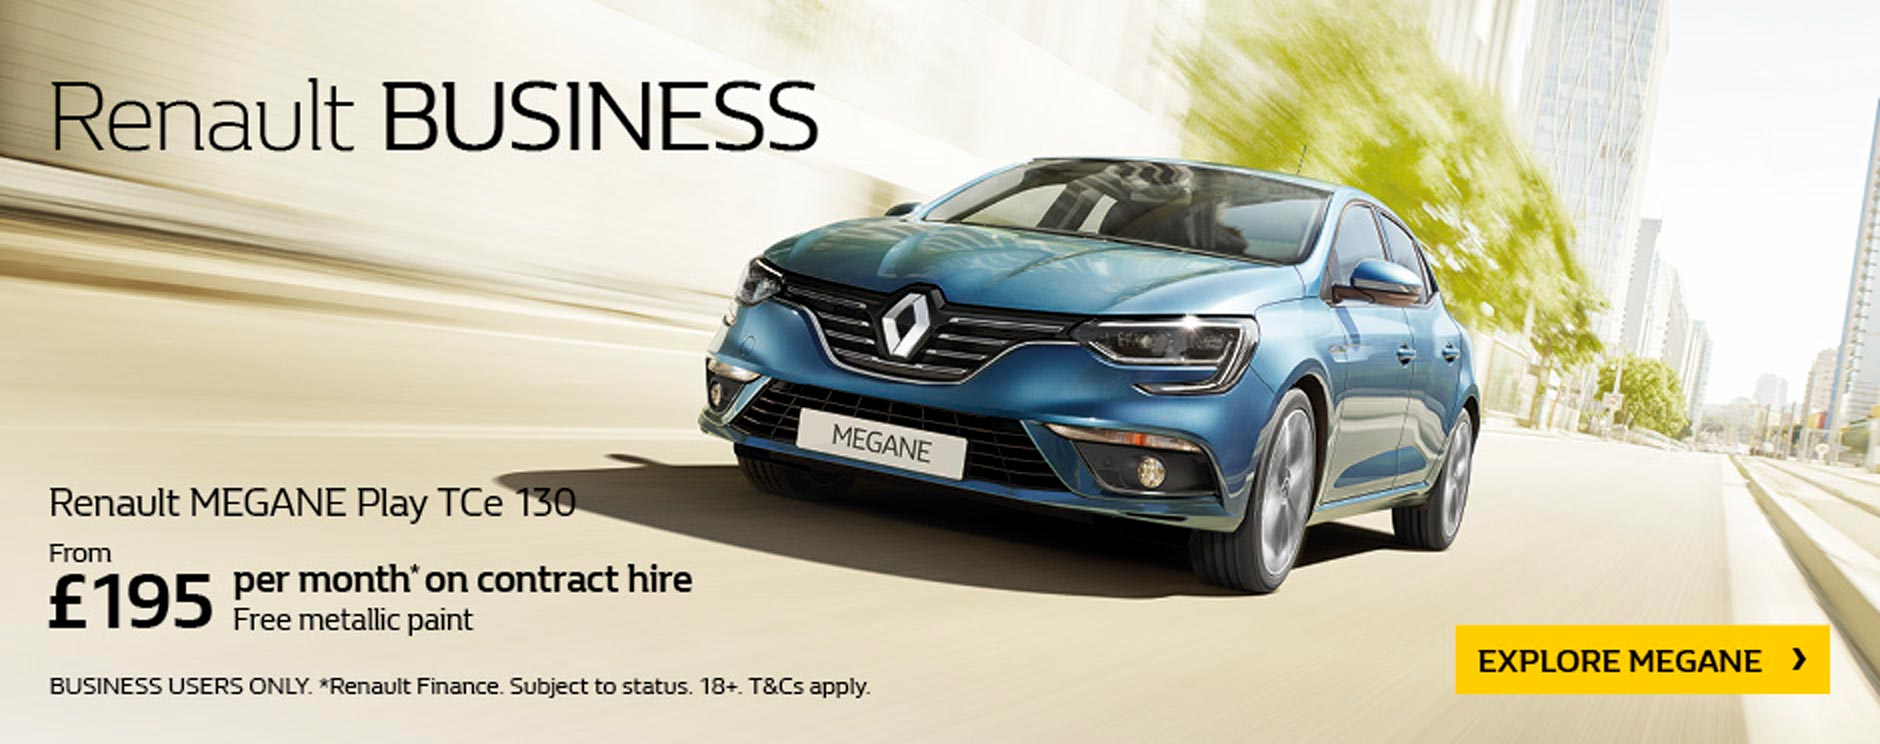 Renault Megan Business Hire bb